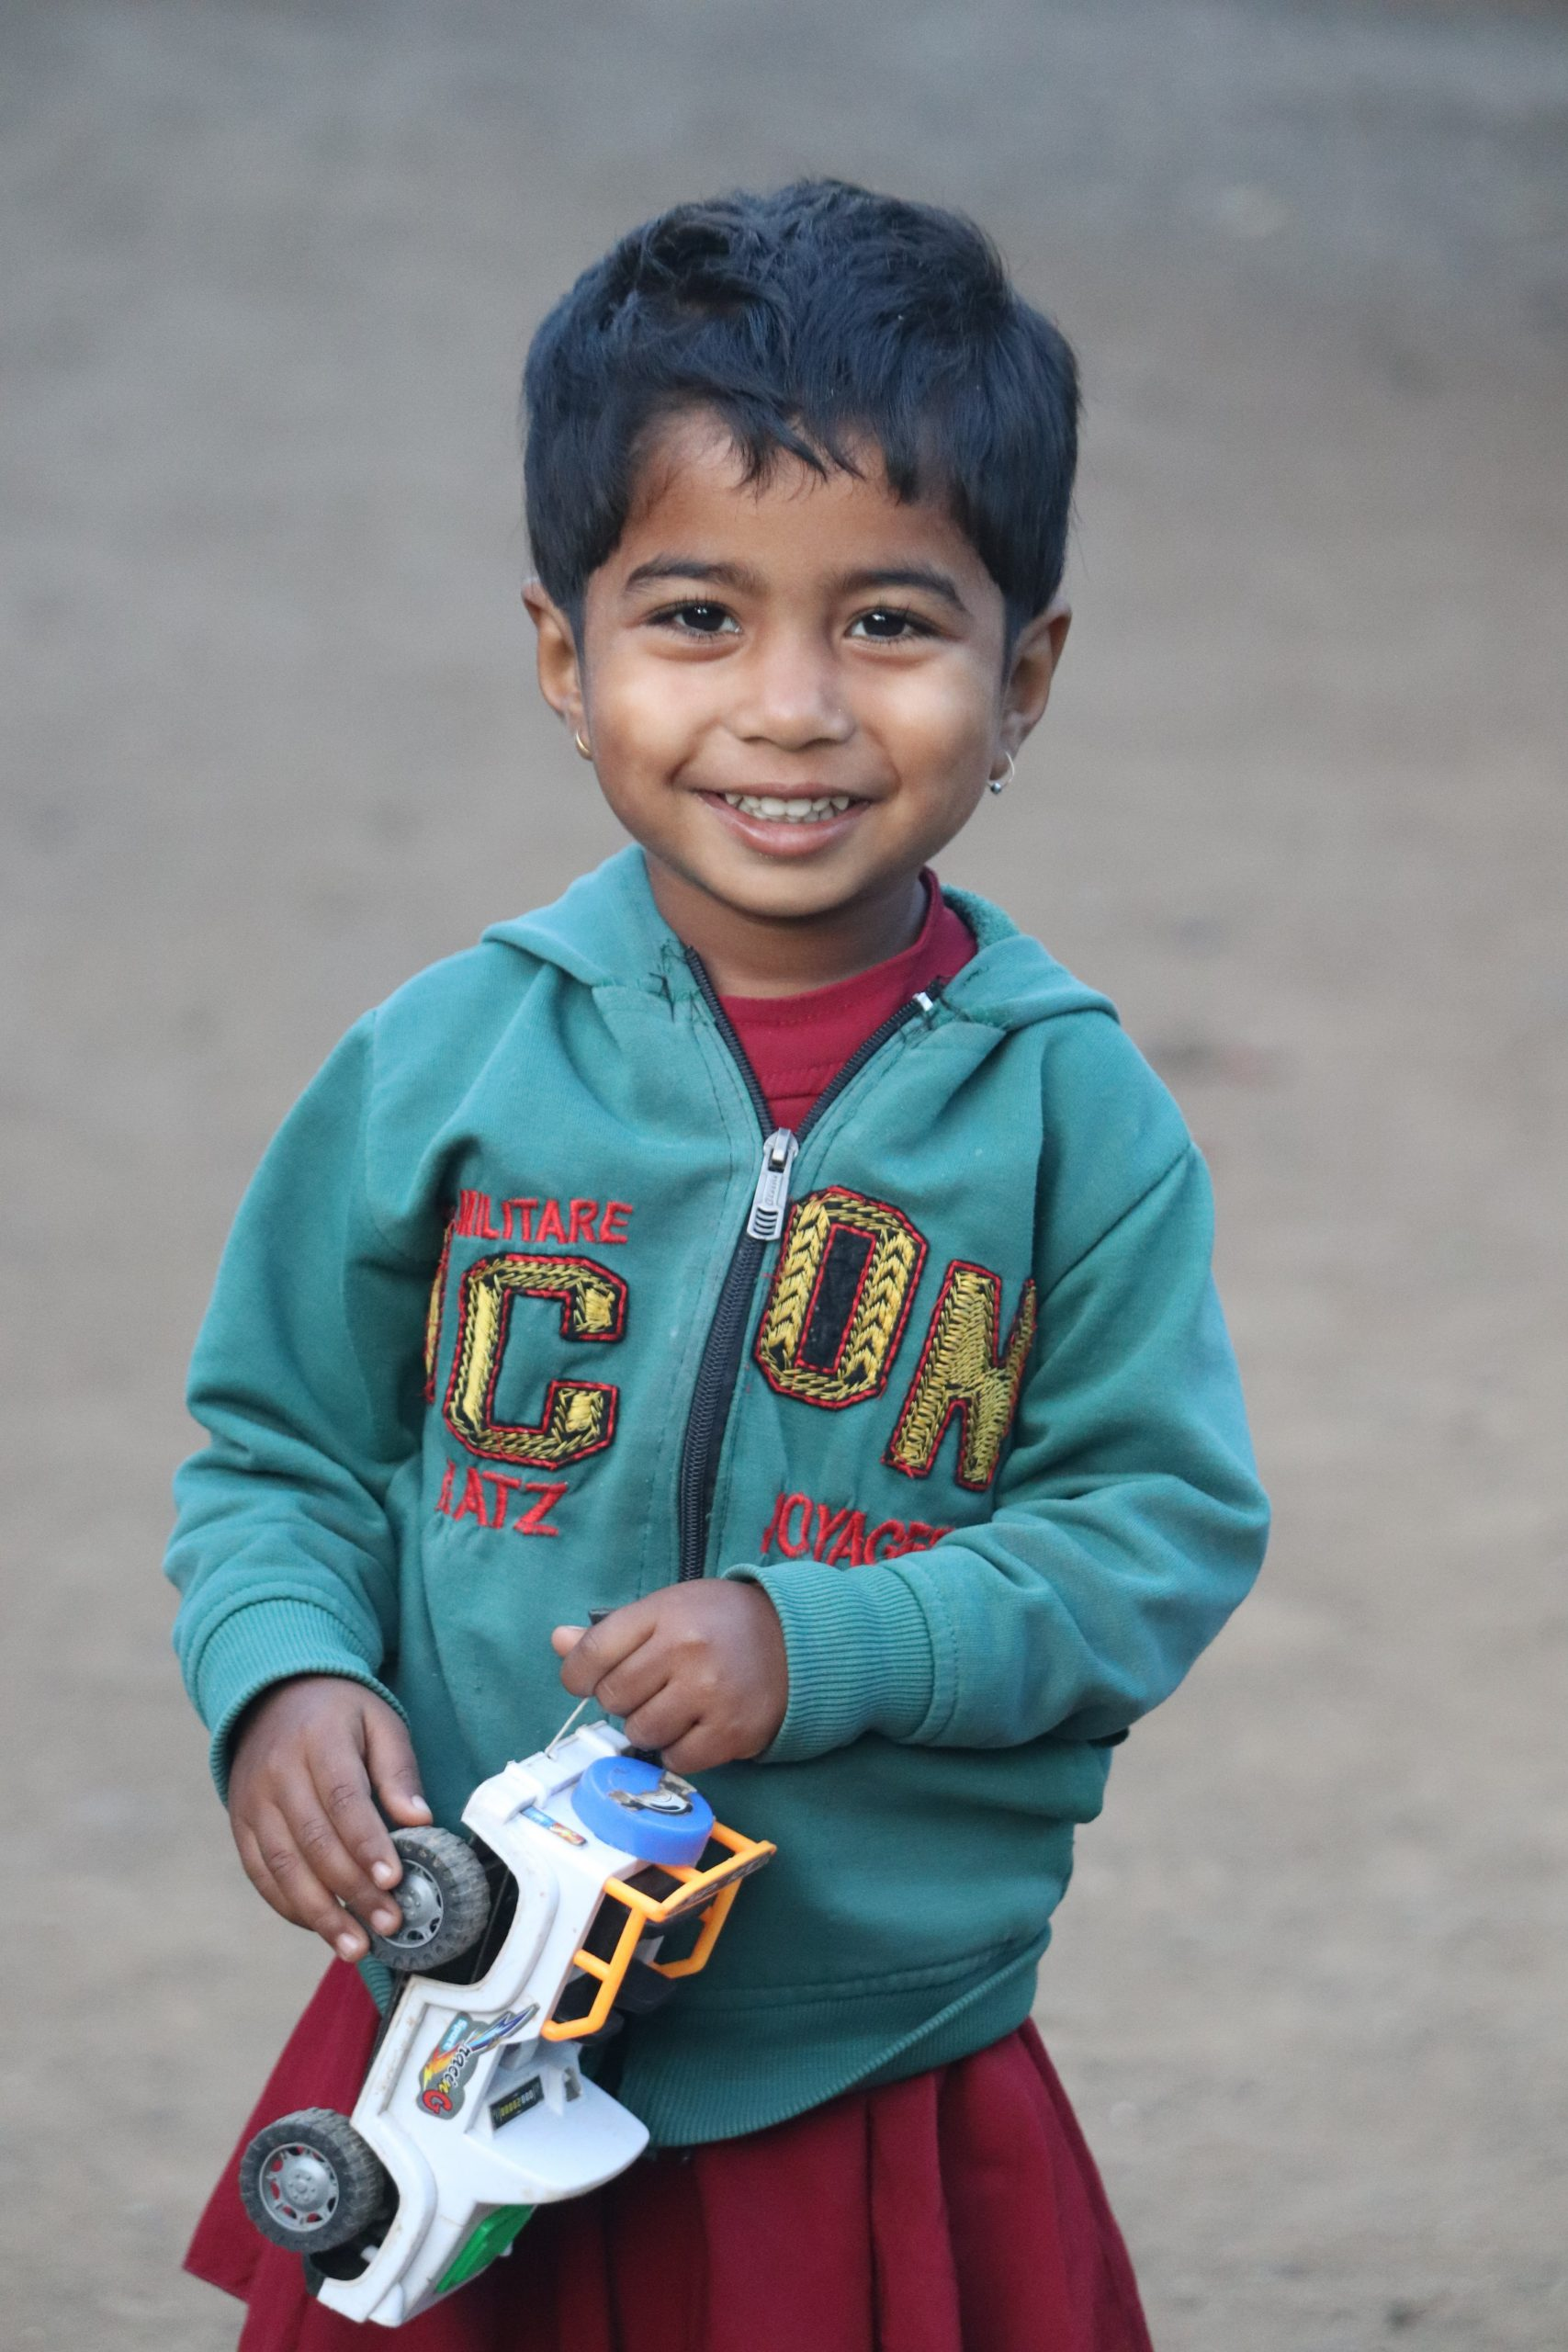 A little boy with toy